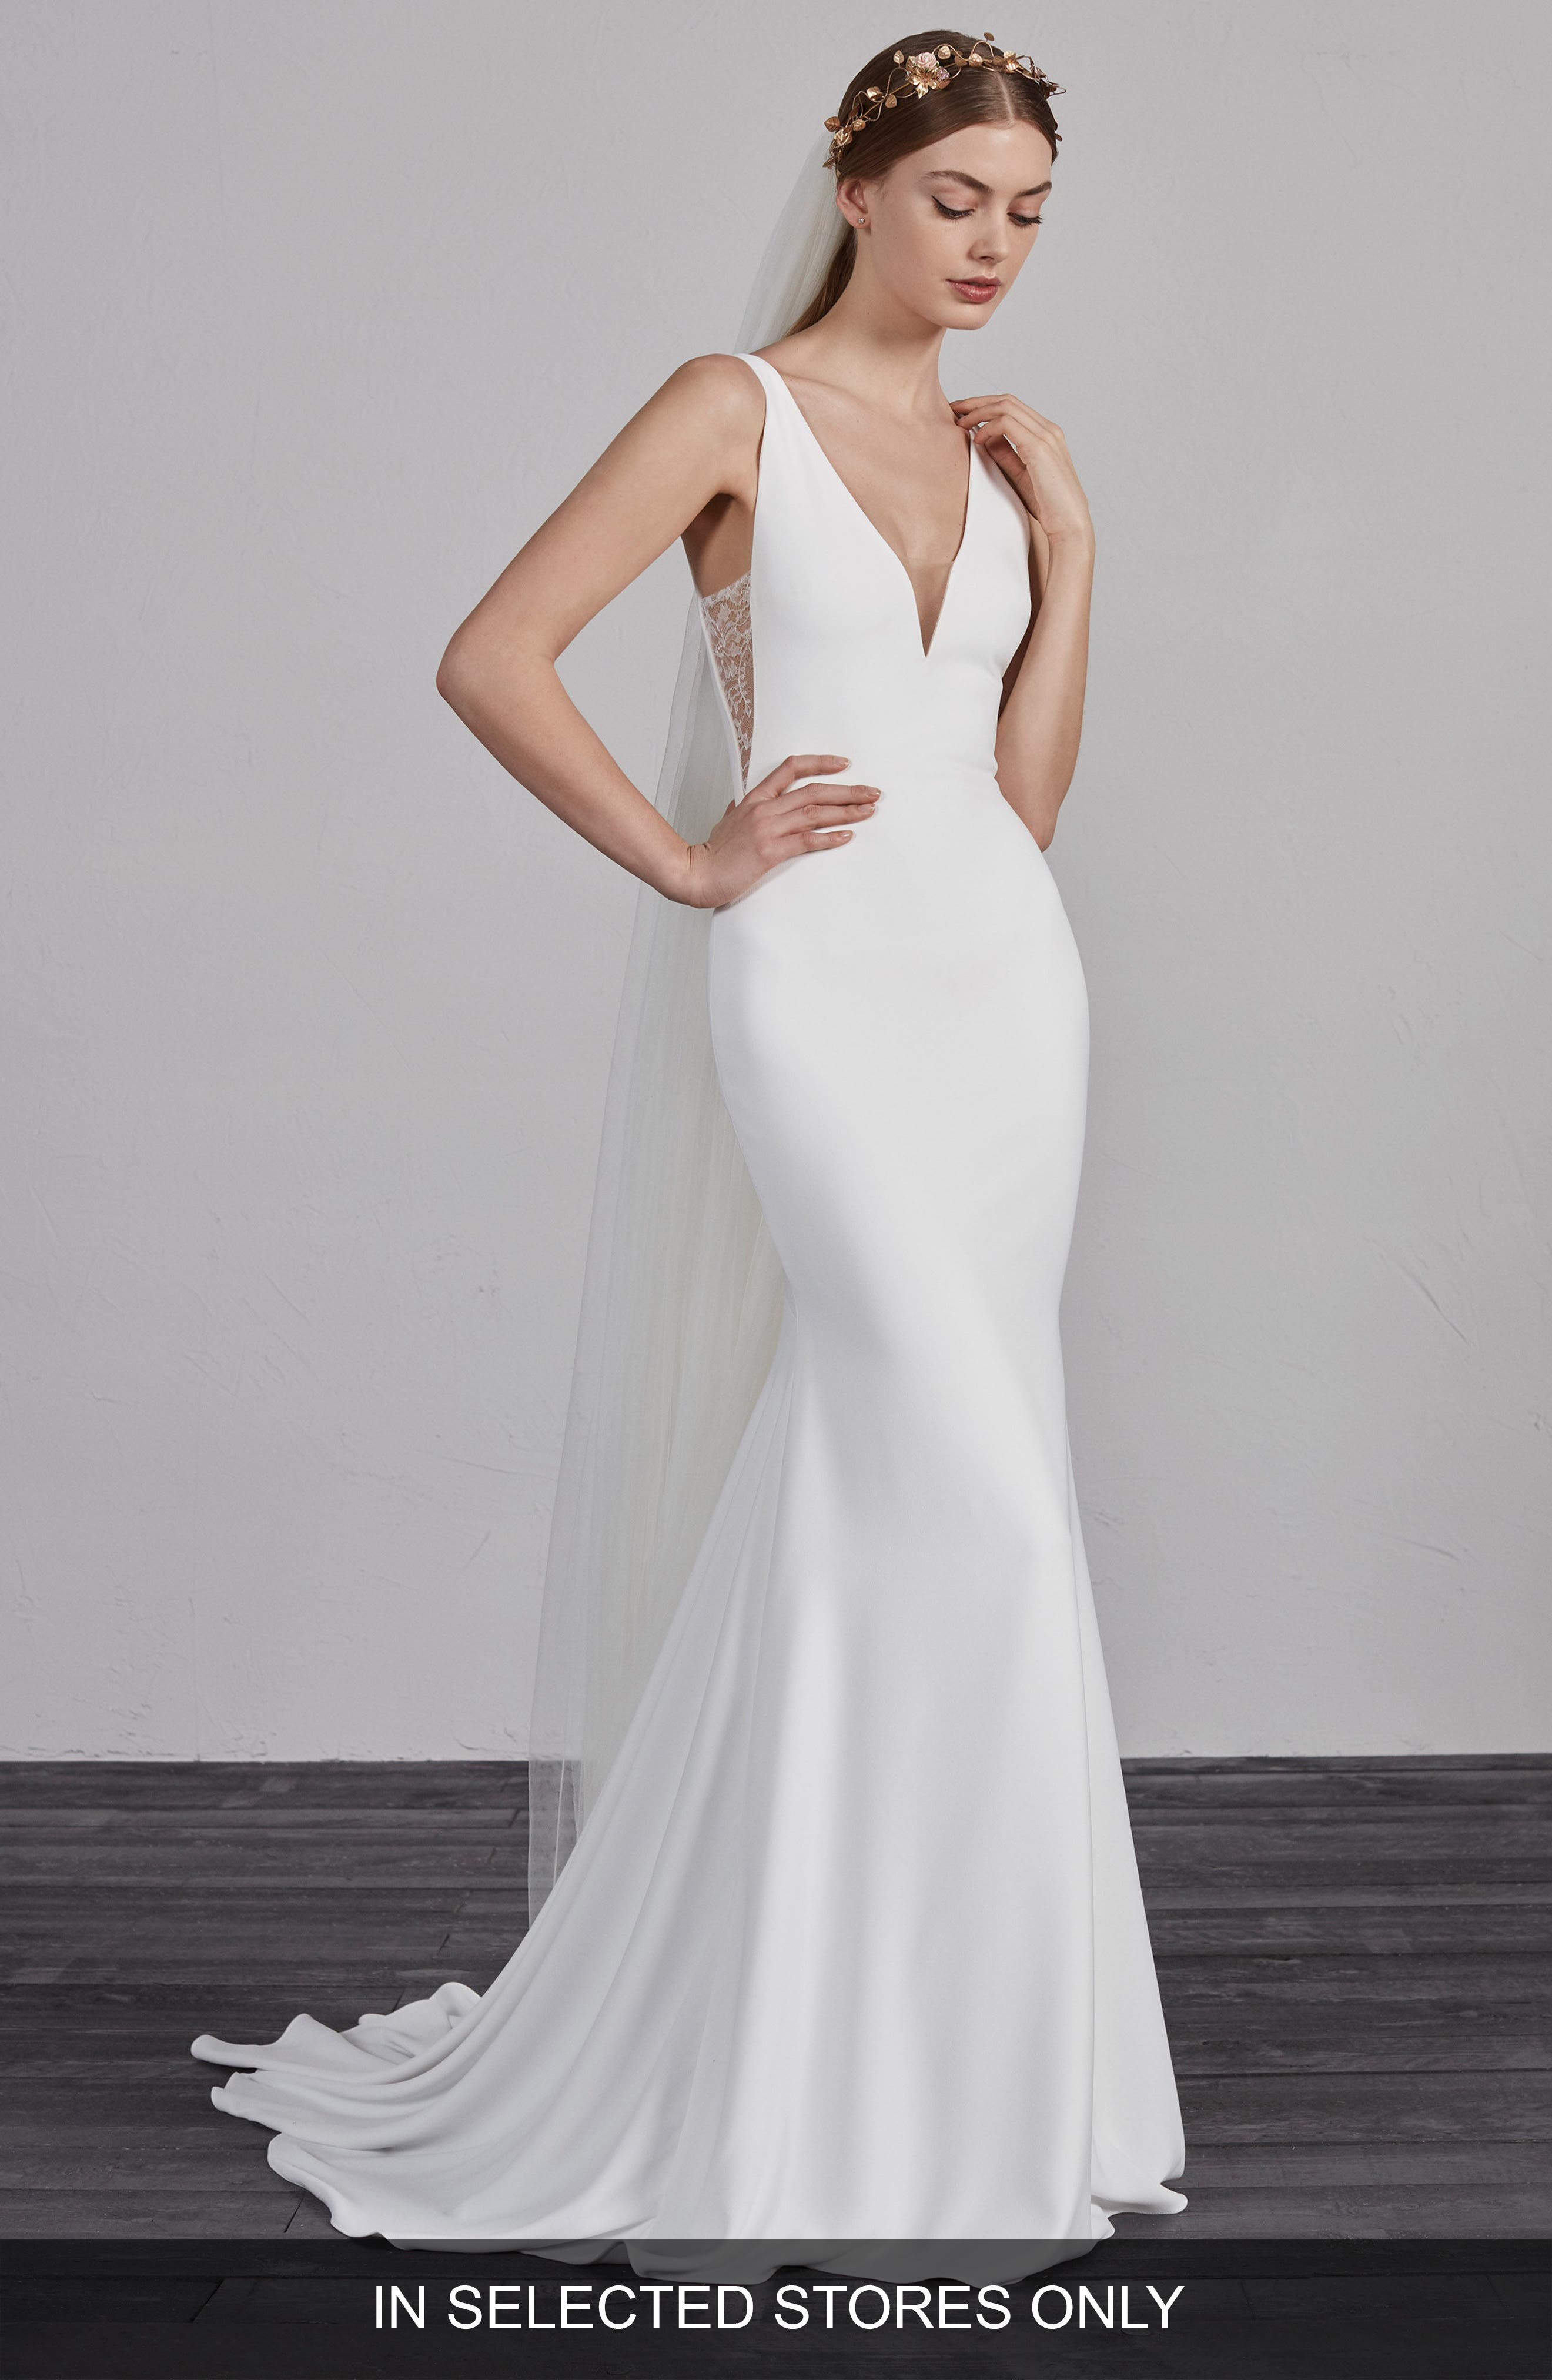 Estilo V-Neck Crepe Trumpet Gown,                             Main thumbnail 1, color,                             OFF WHITE/ CRST